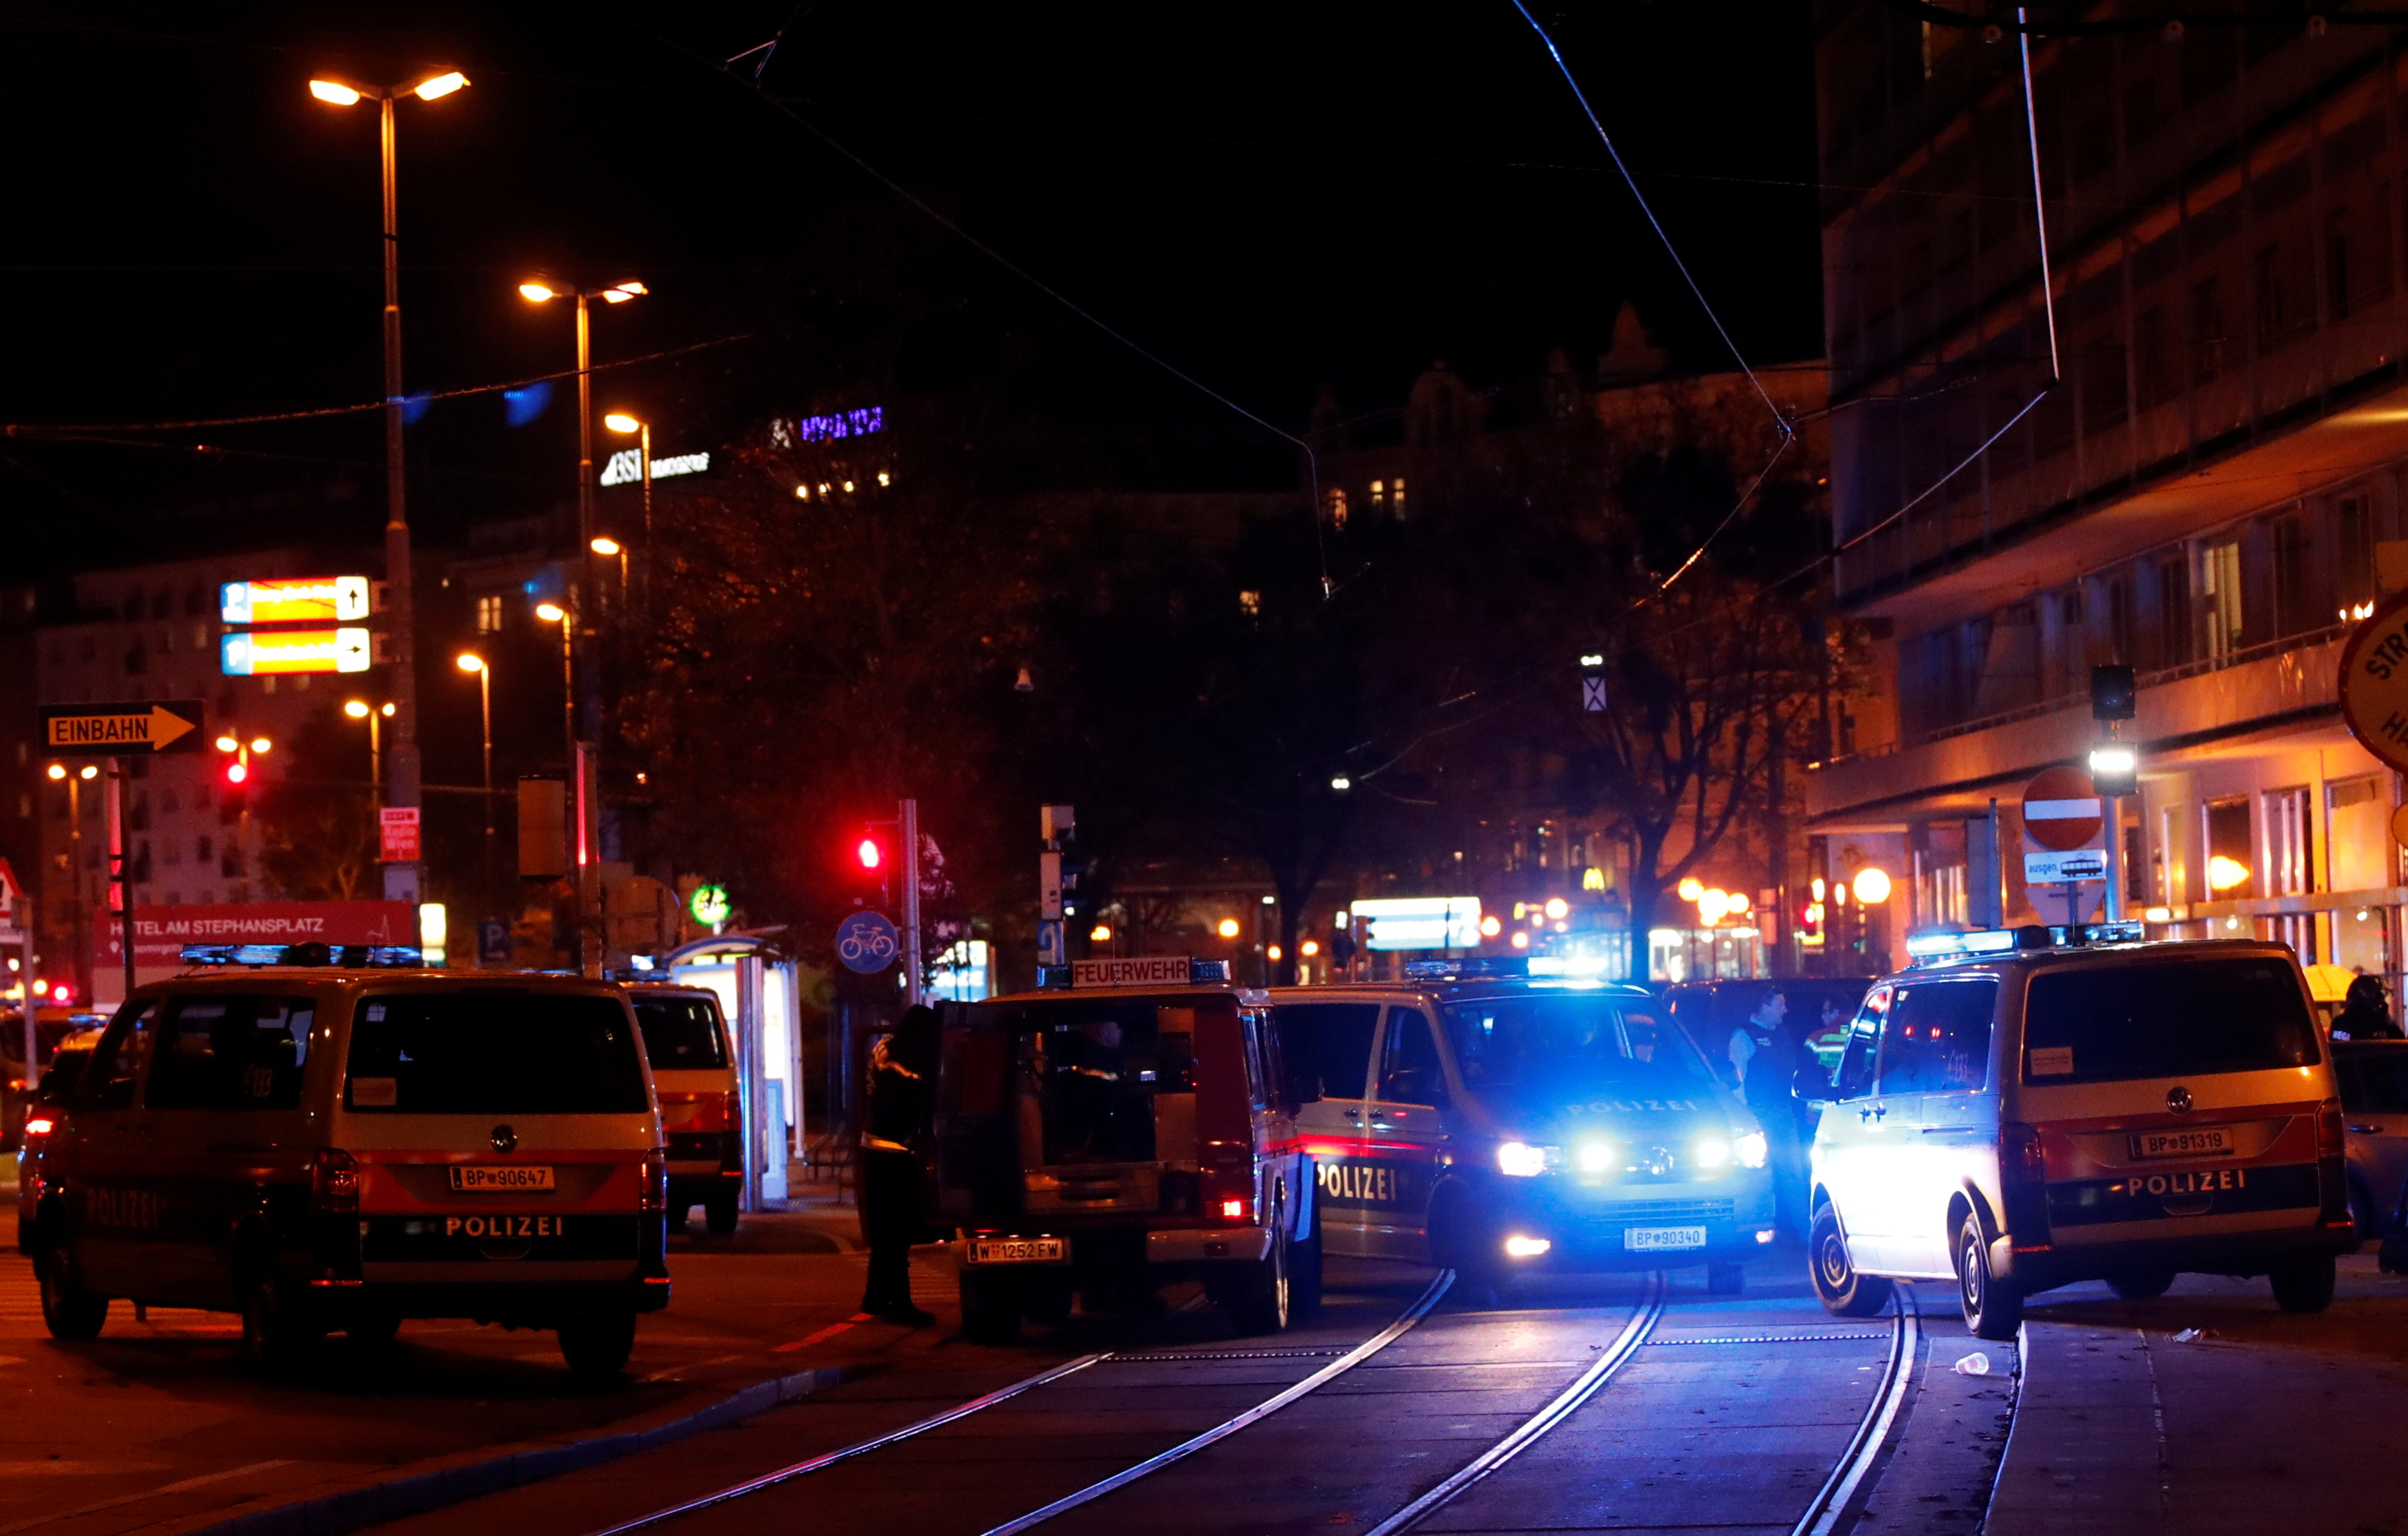 Police operation at Vienna synagogue, shots fired